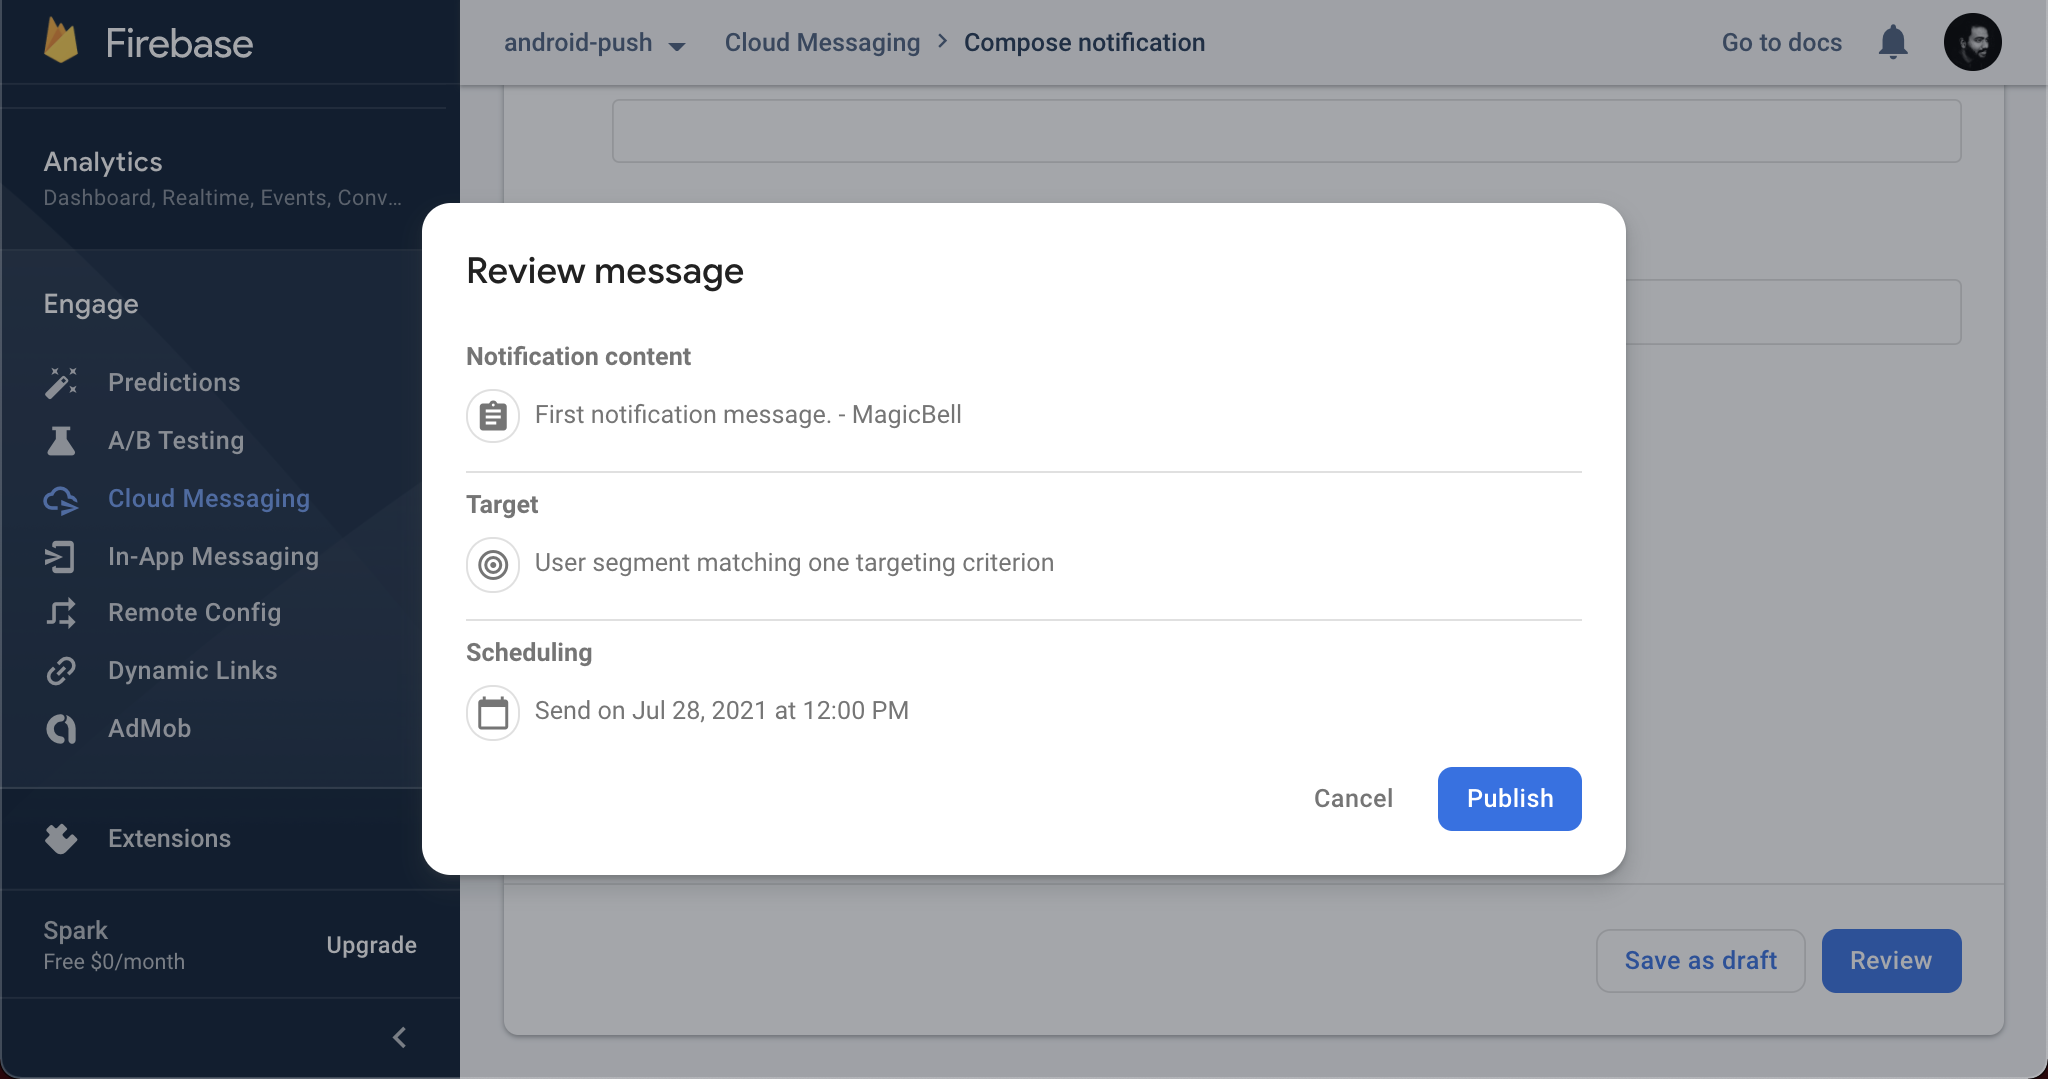 Review and publish your notification